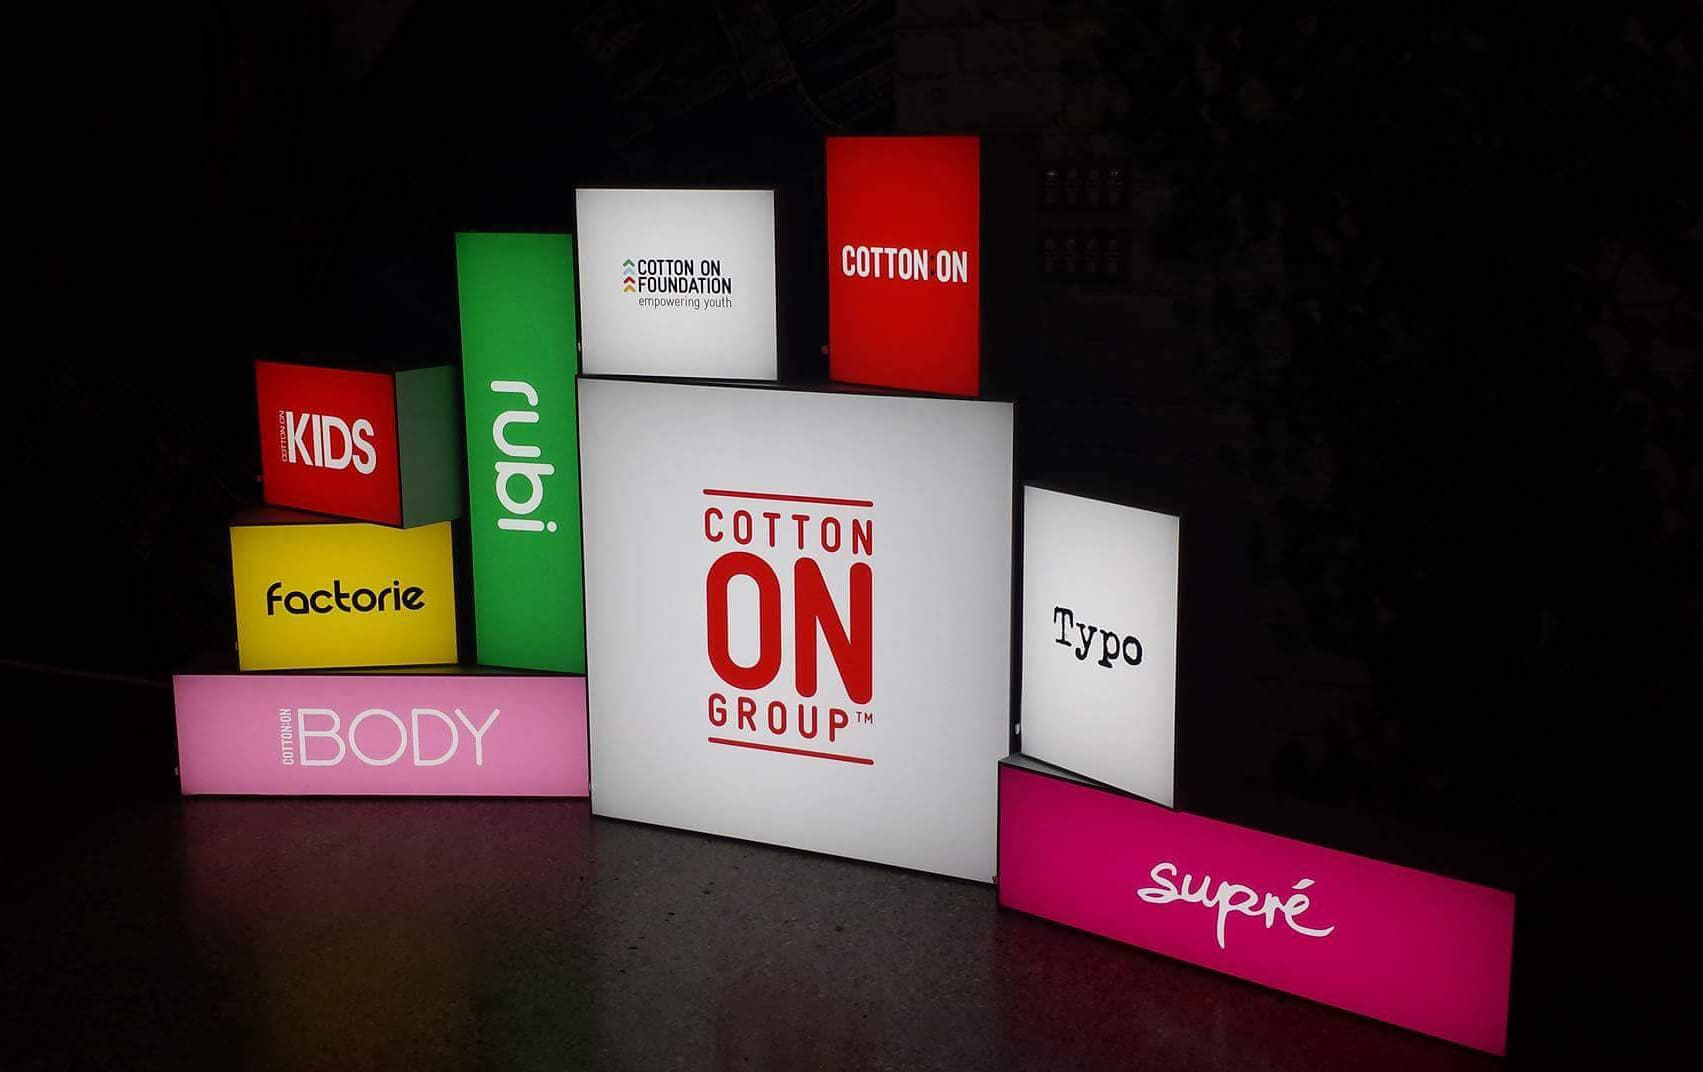 Cotton On promotional material on colourful backlit frames